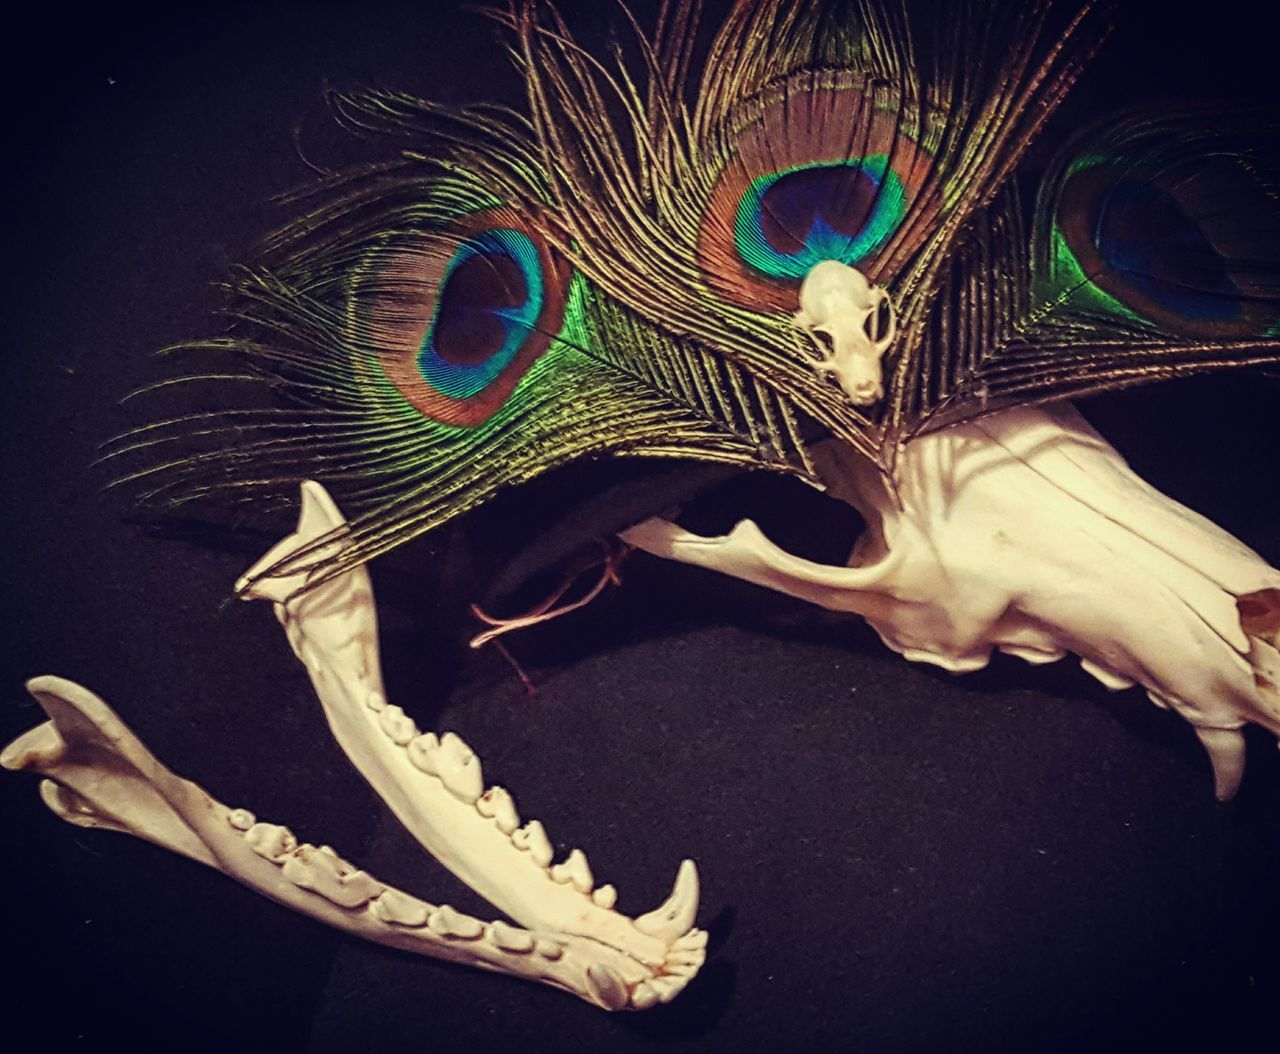 Close-up No People Skull Cayote Animal Skull Bones Vulture Culture Peacock Feather Peacock Feathers Bat Skull Headdress Headband Soft Soft Grunge Mandibles Macabre Art Dark Photography Dark Art Costume YYC Calgary Skull Art